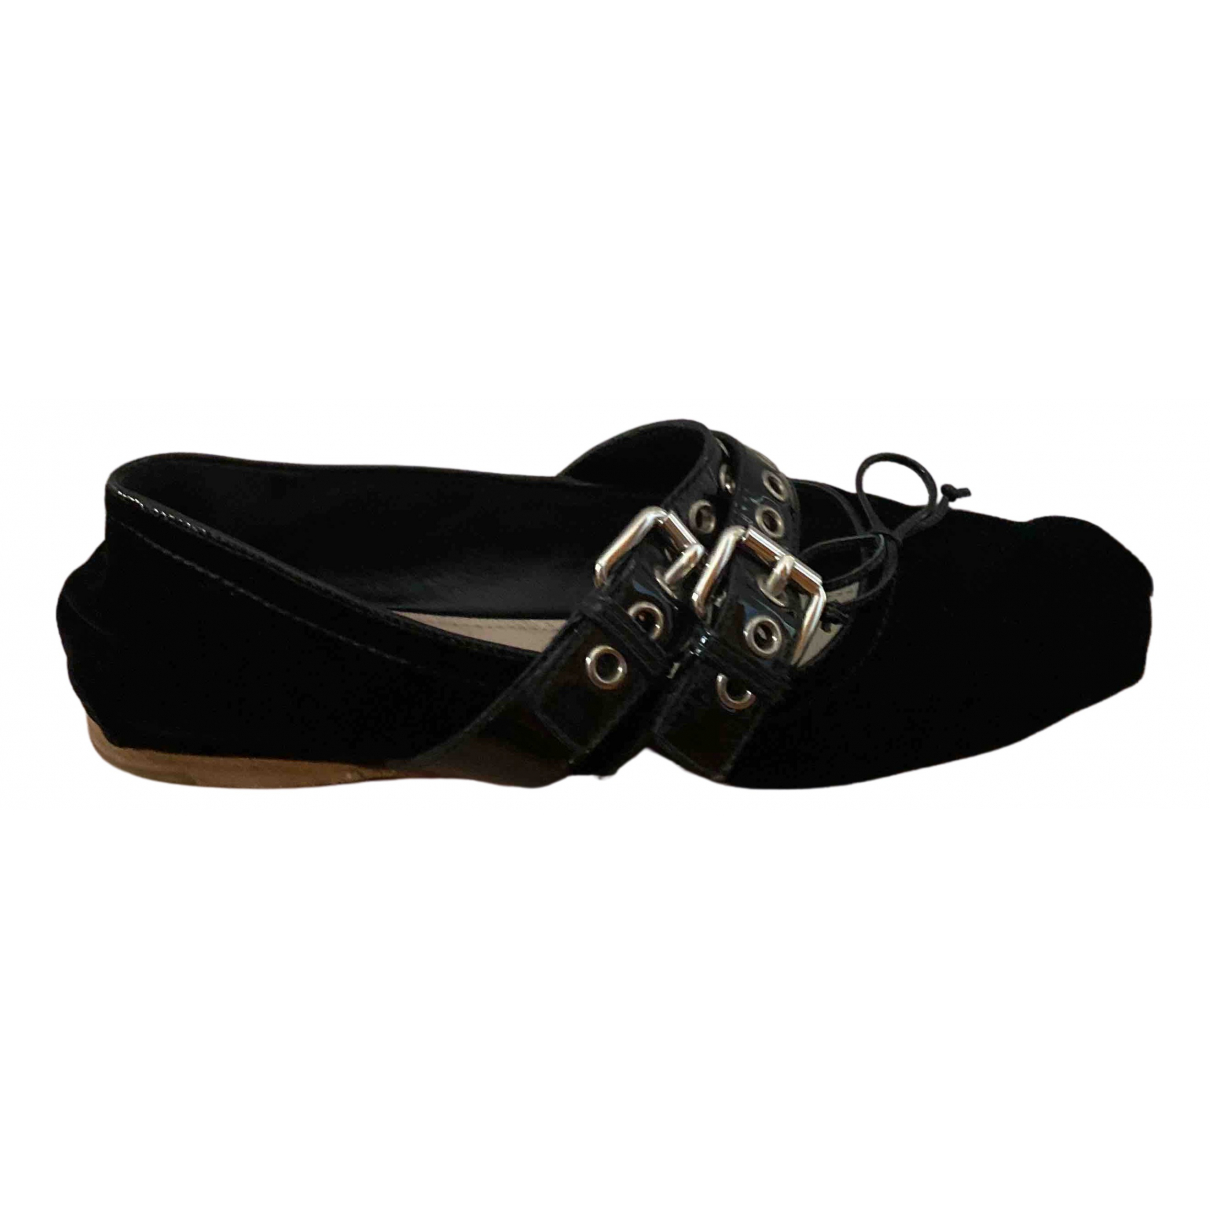 Miu Miu N Black Velvet Ballet flats for Women 37.5 EU